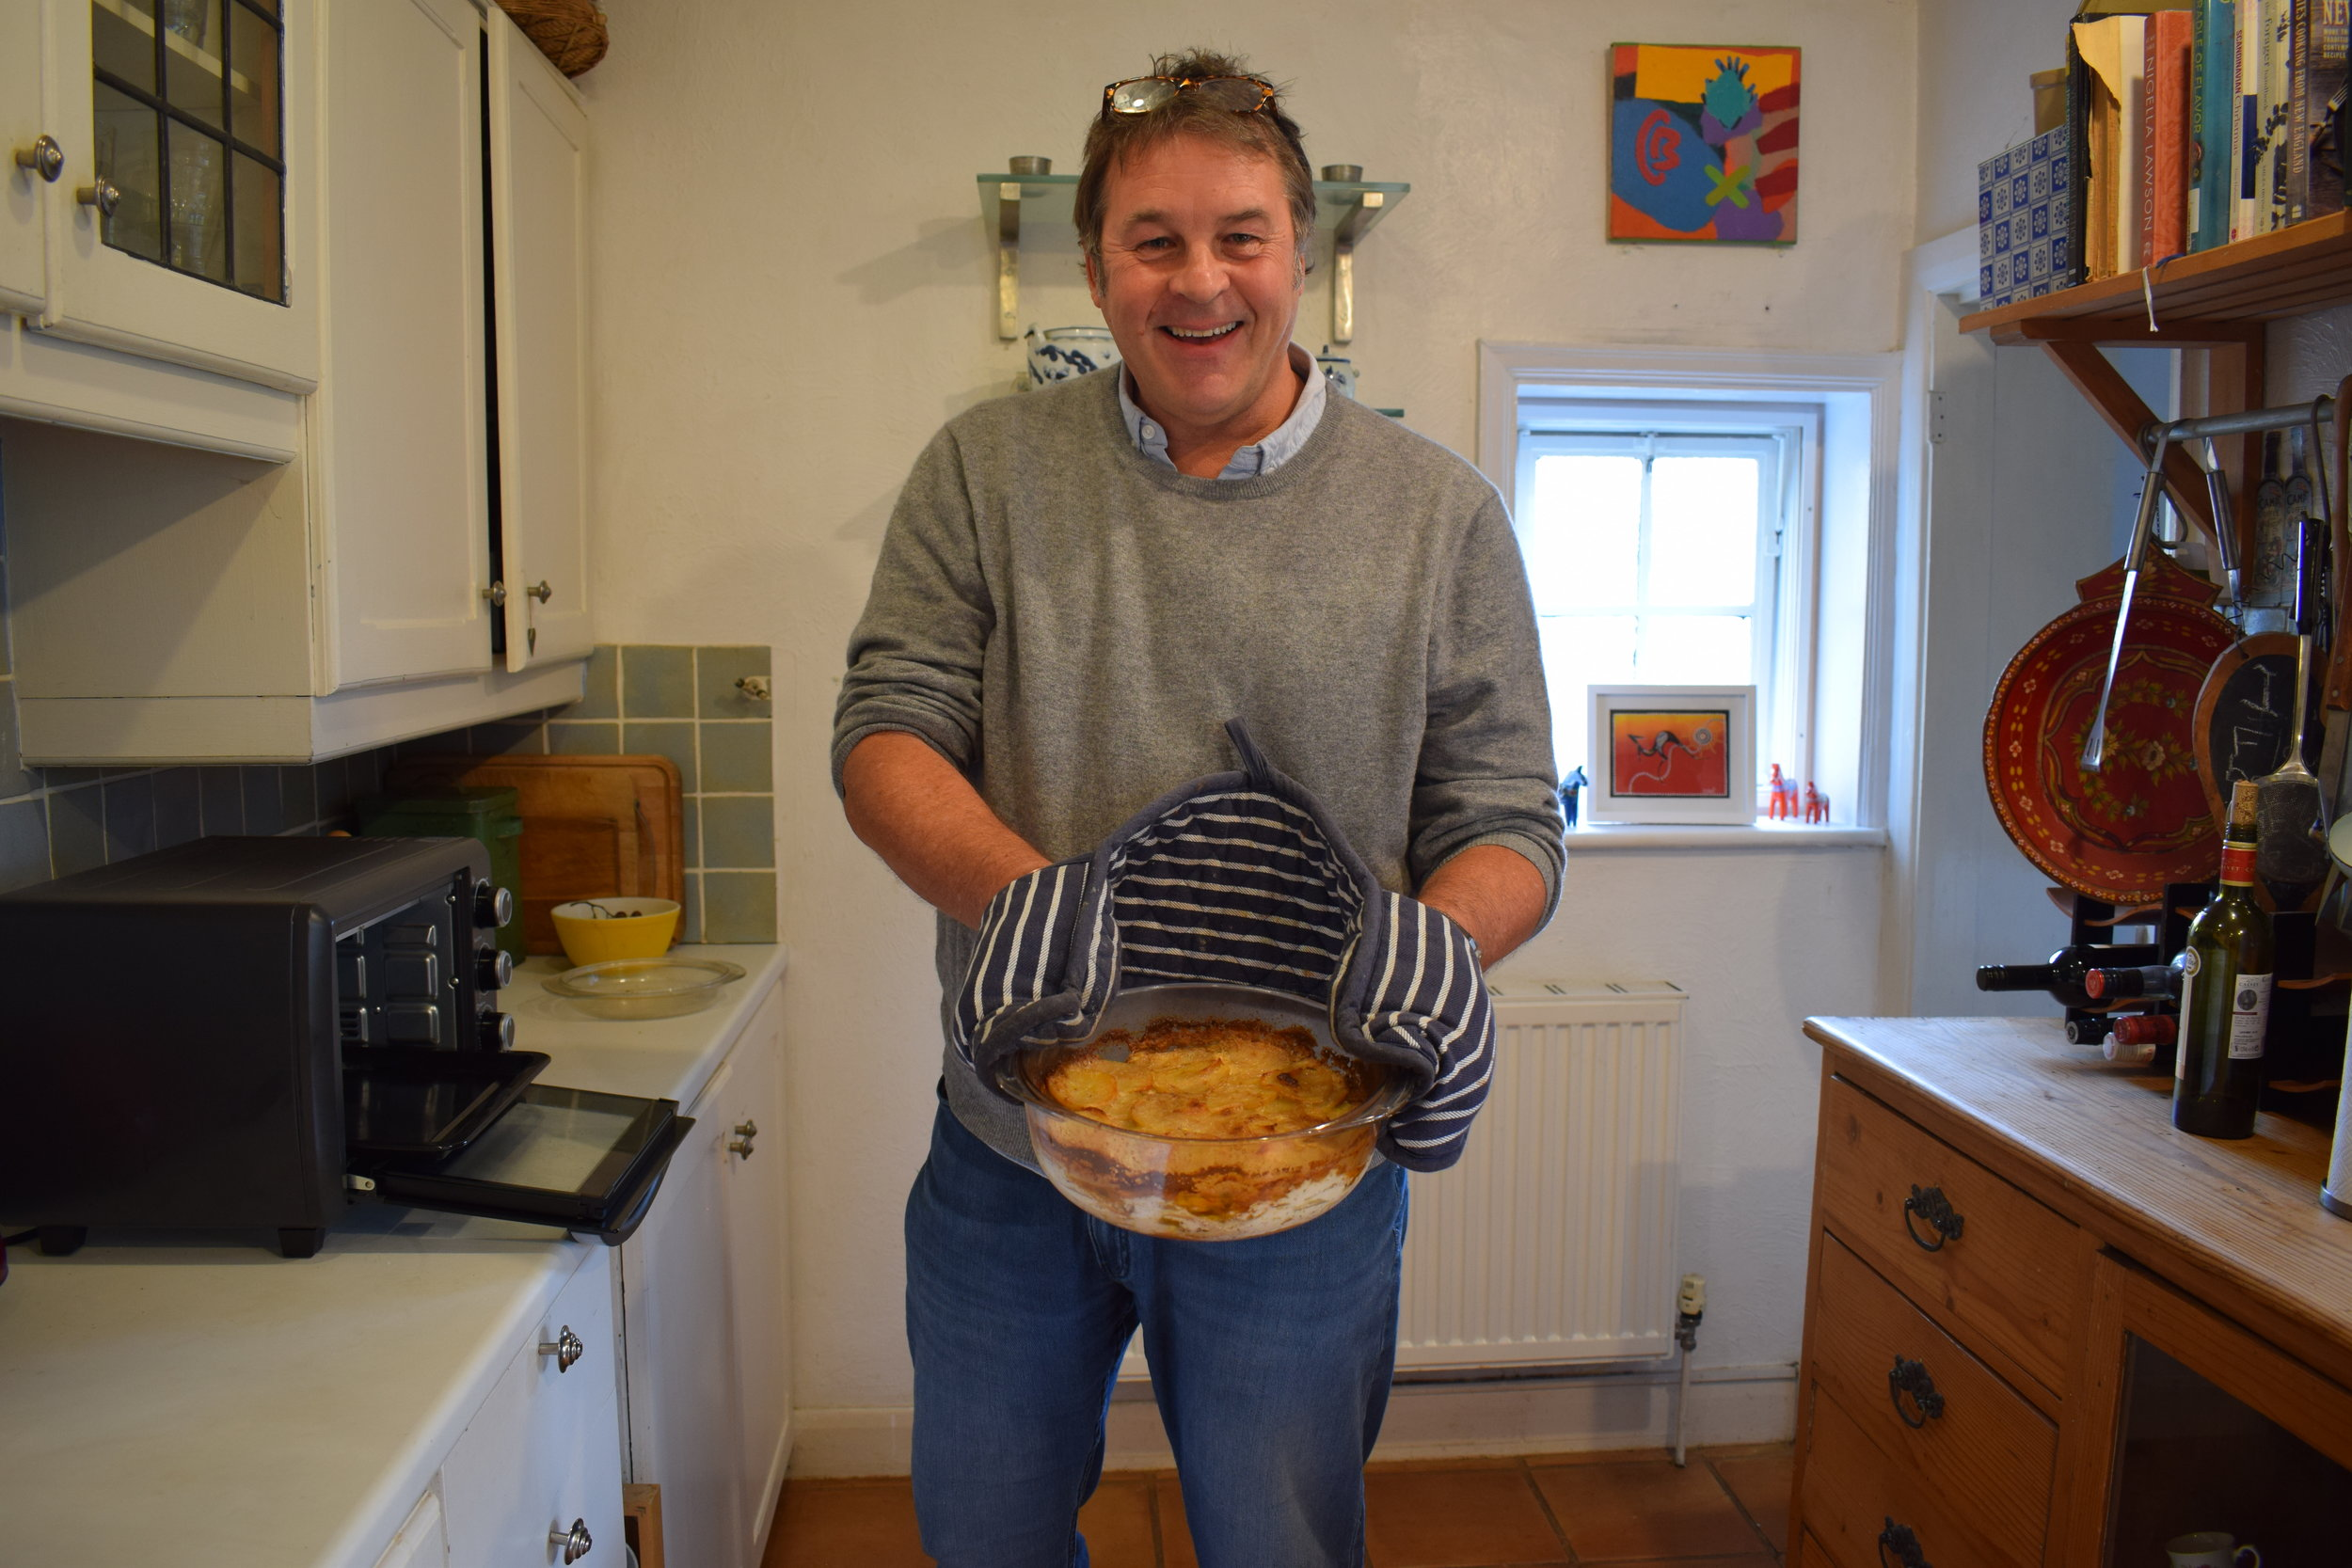 John with the finished dish, just out of the oven. Photography by Bethan Kapur.